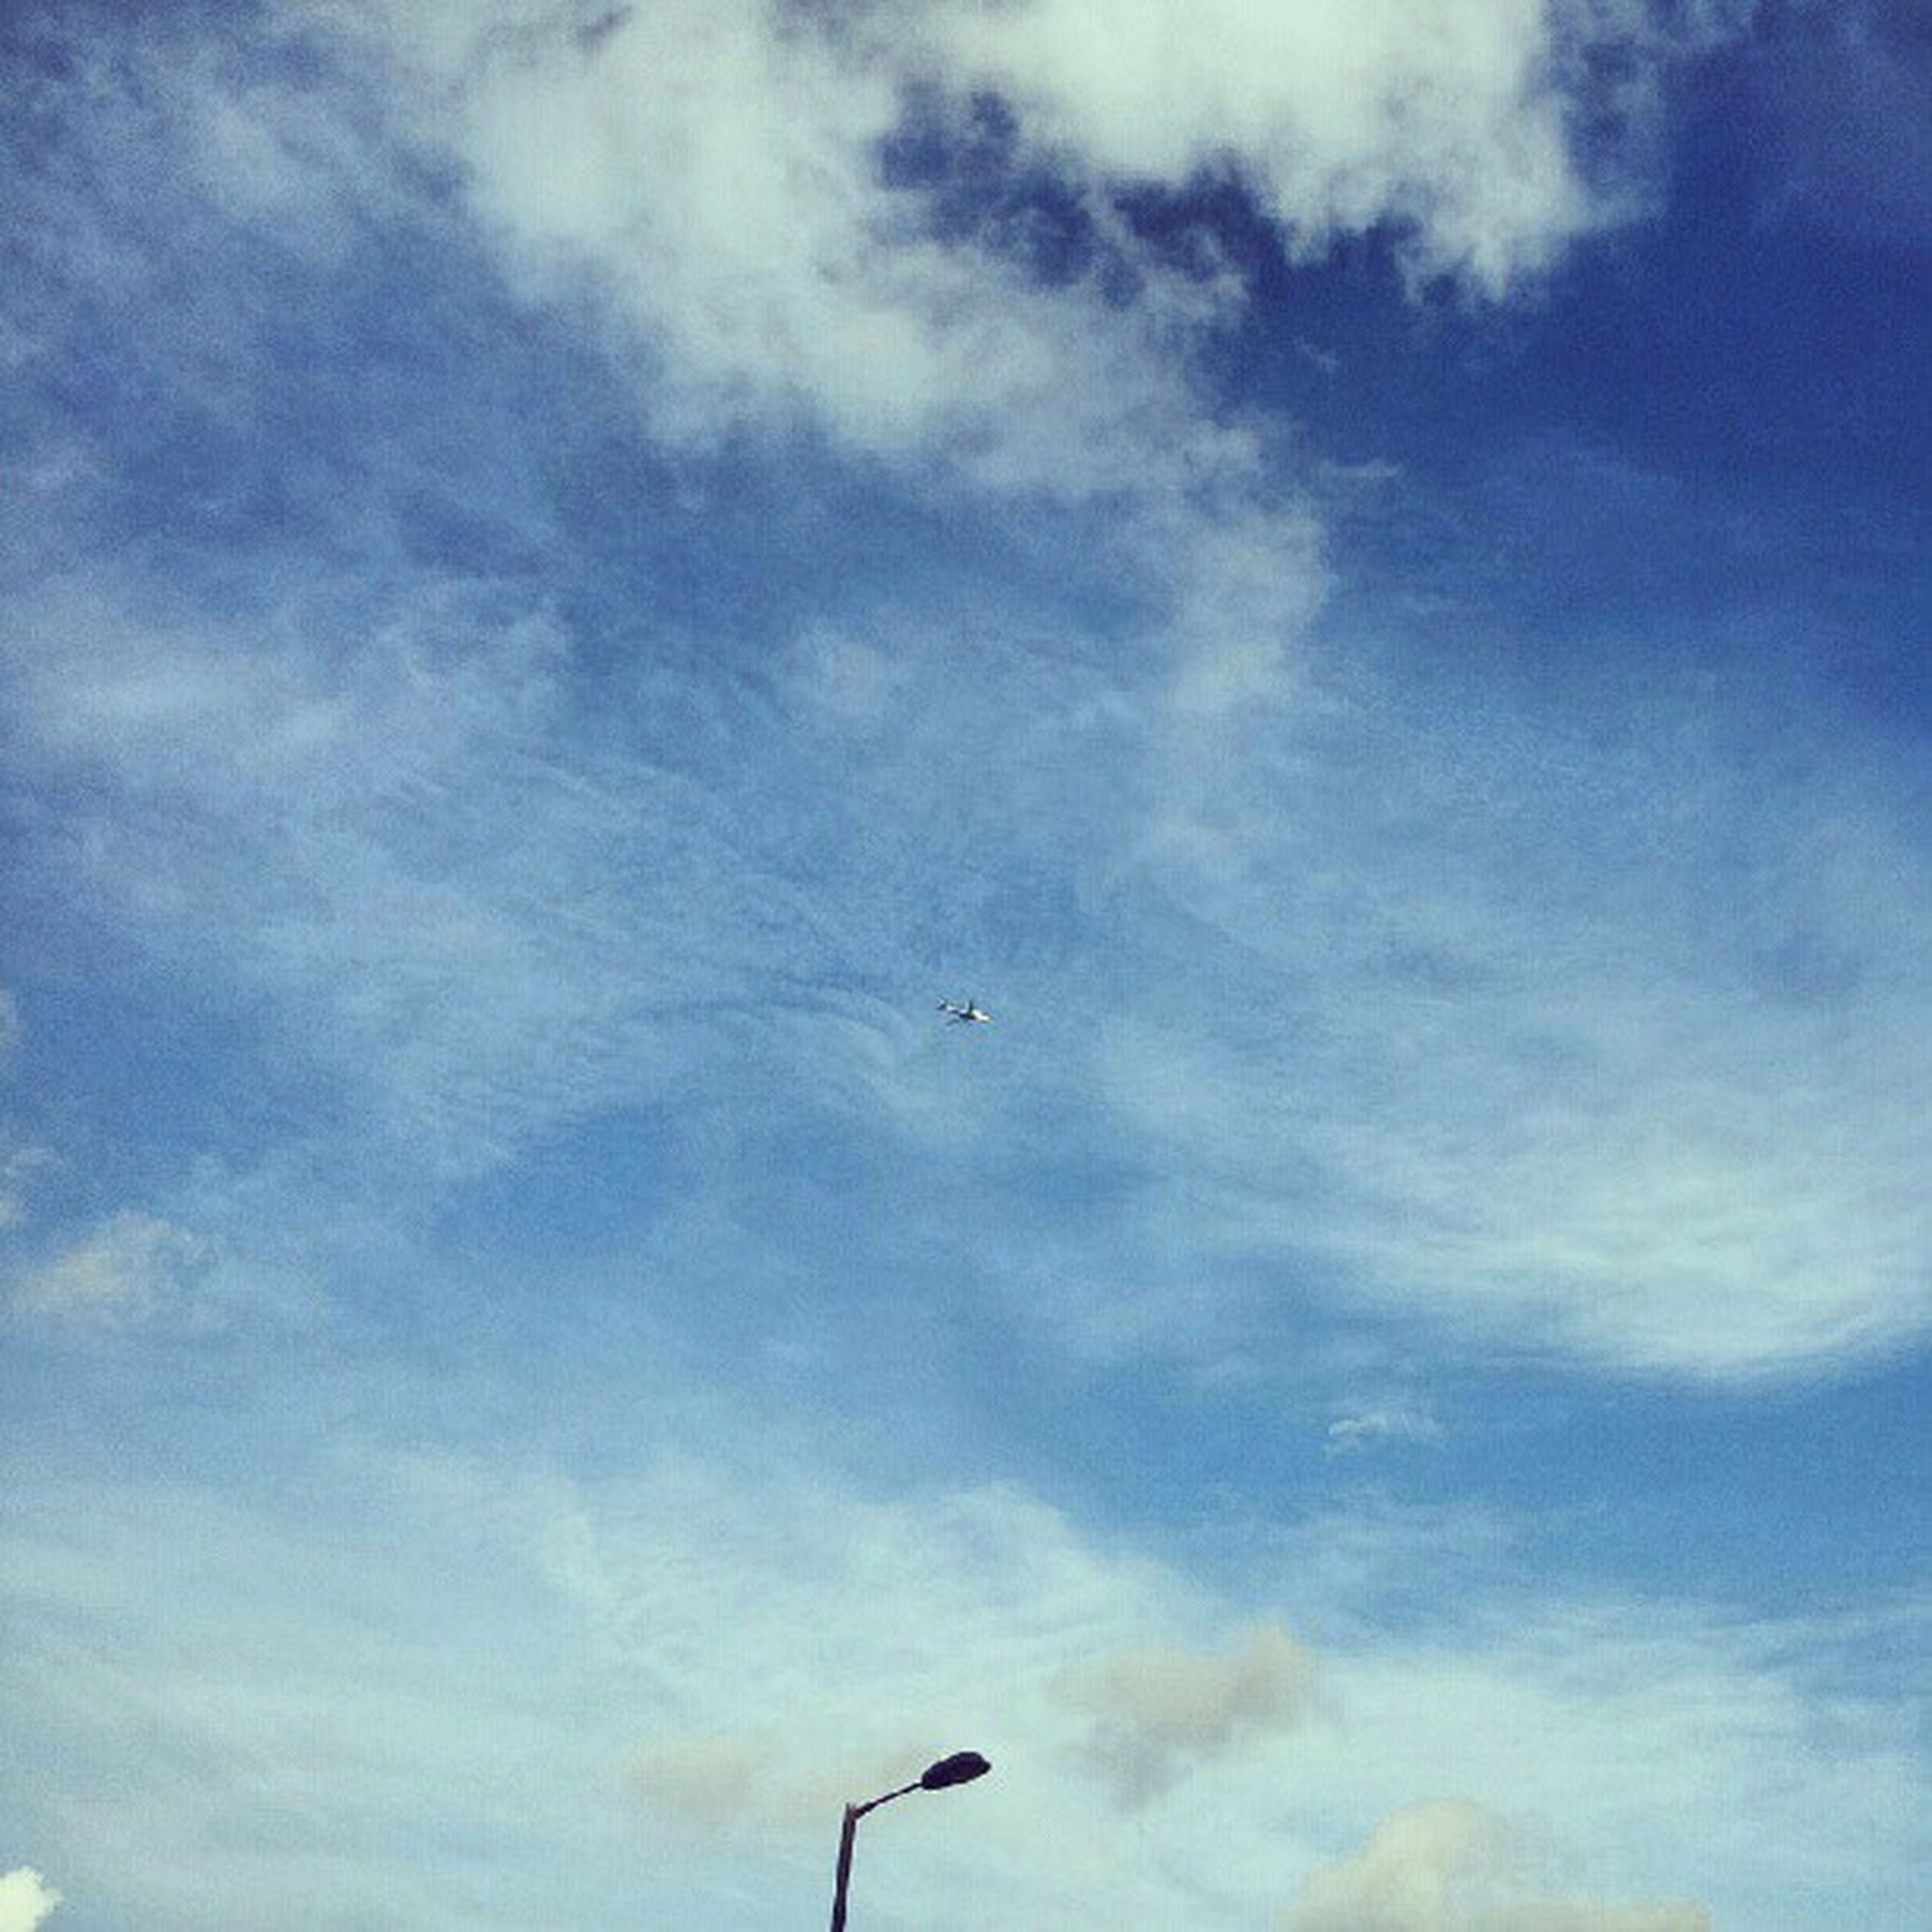 low angle view, sky, flying, cloud - sky, bird, animal themes, cloud, cloudy, blue, nature, wildlife, street light, mid-air, silhouette, beauty in nature, outdoors, animals in the wild, airplane, tranquility, day